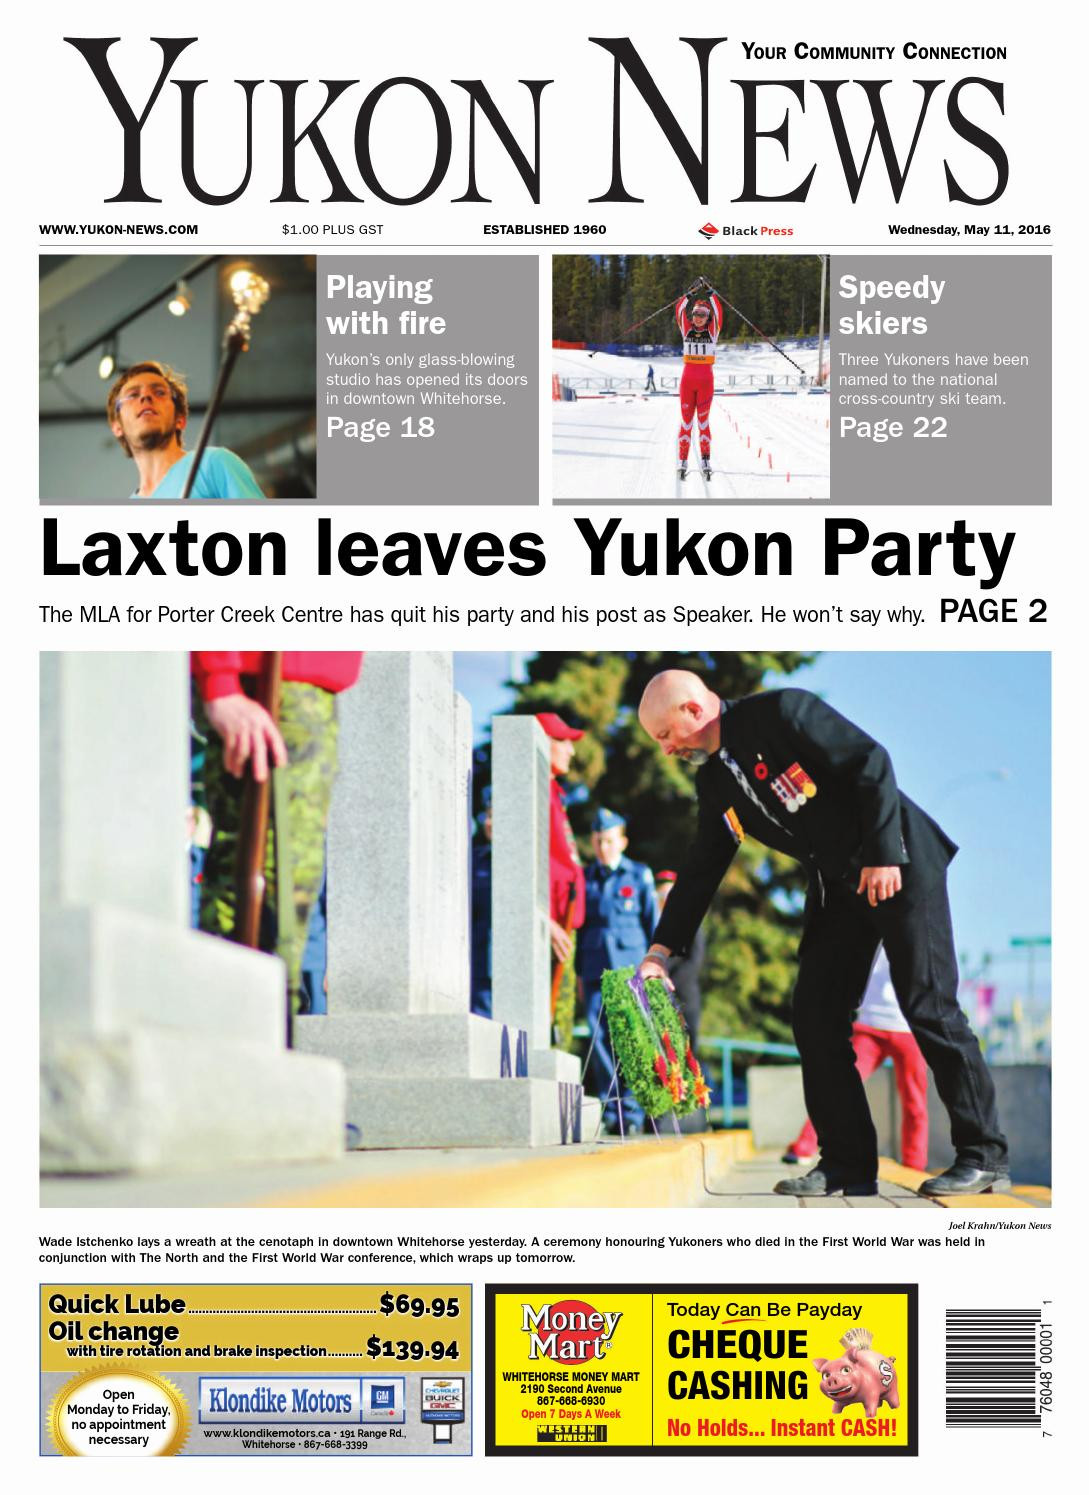 Yukon Department Of Health and social Services Great Yukon News May 11 2016 by Black Press Media Group issuu